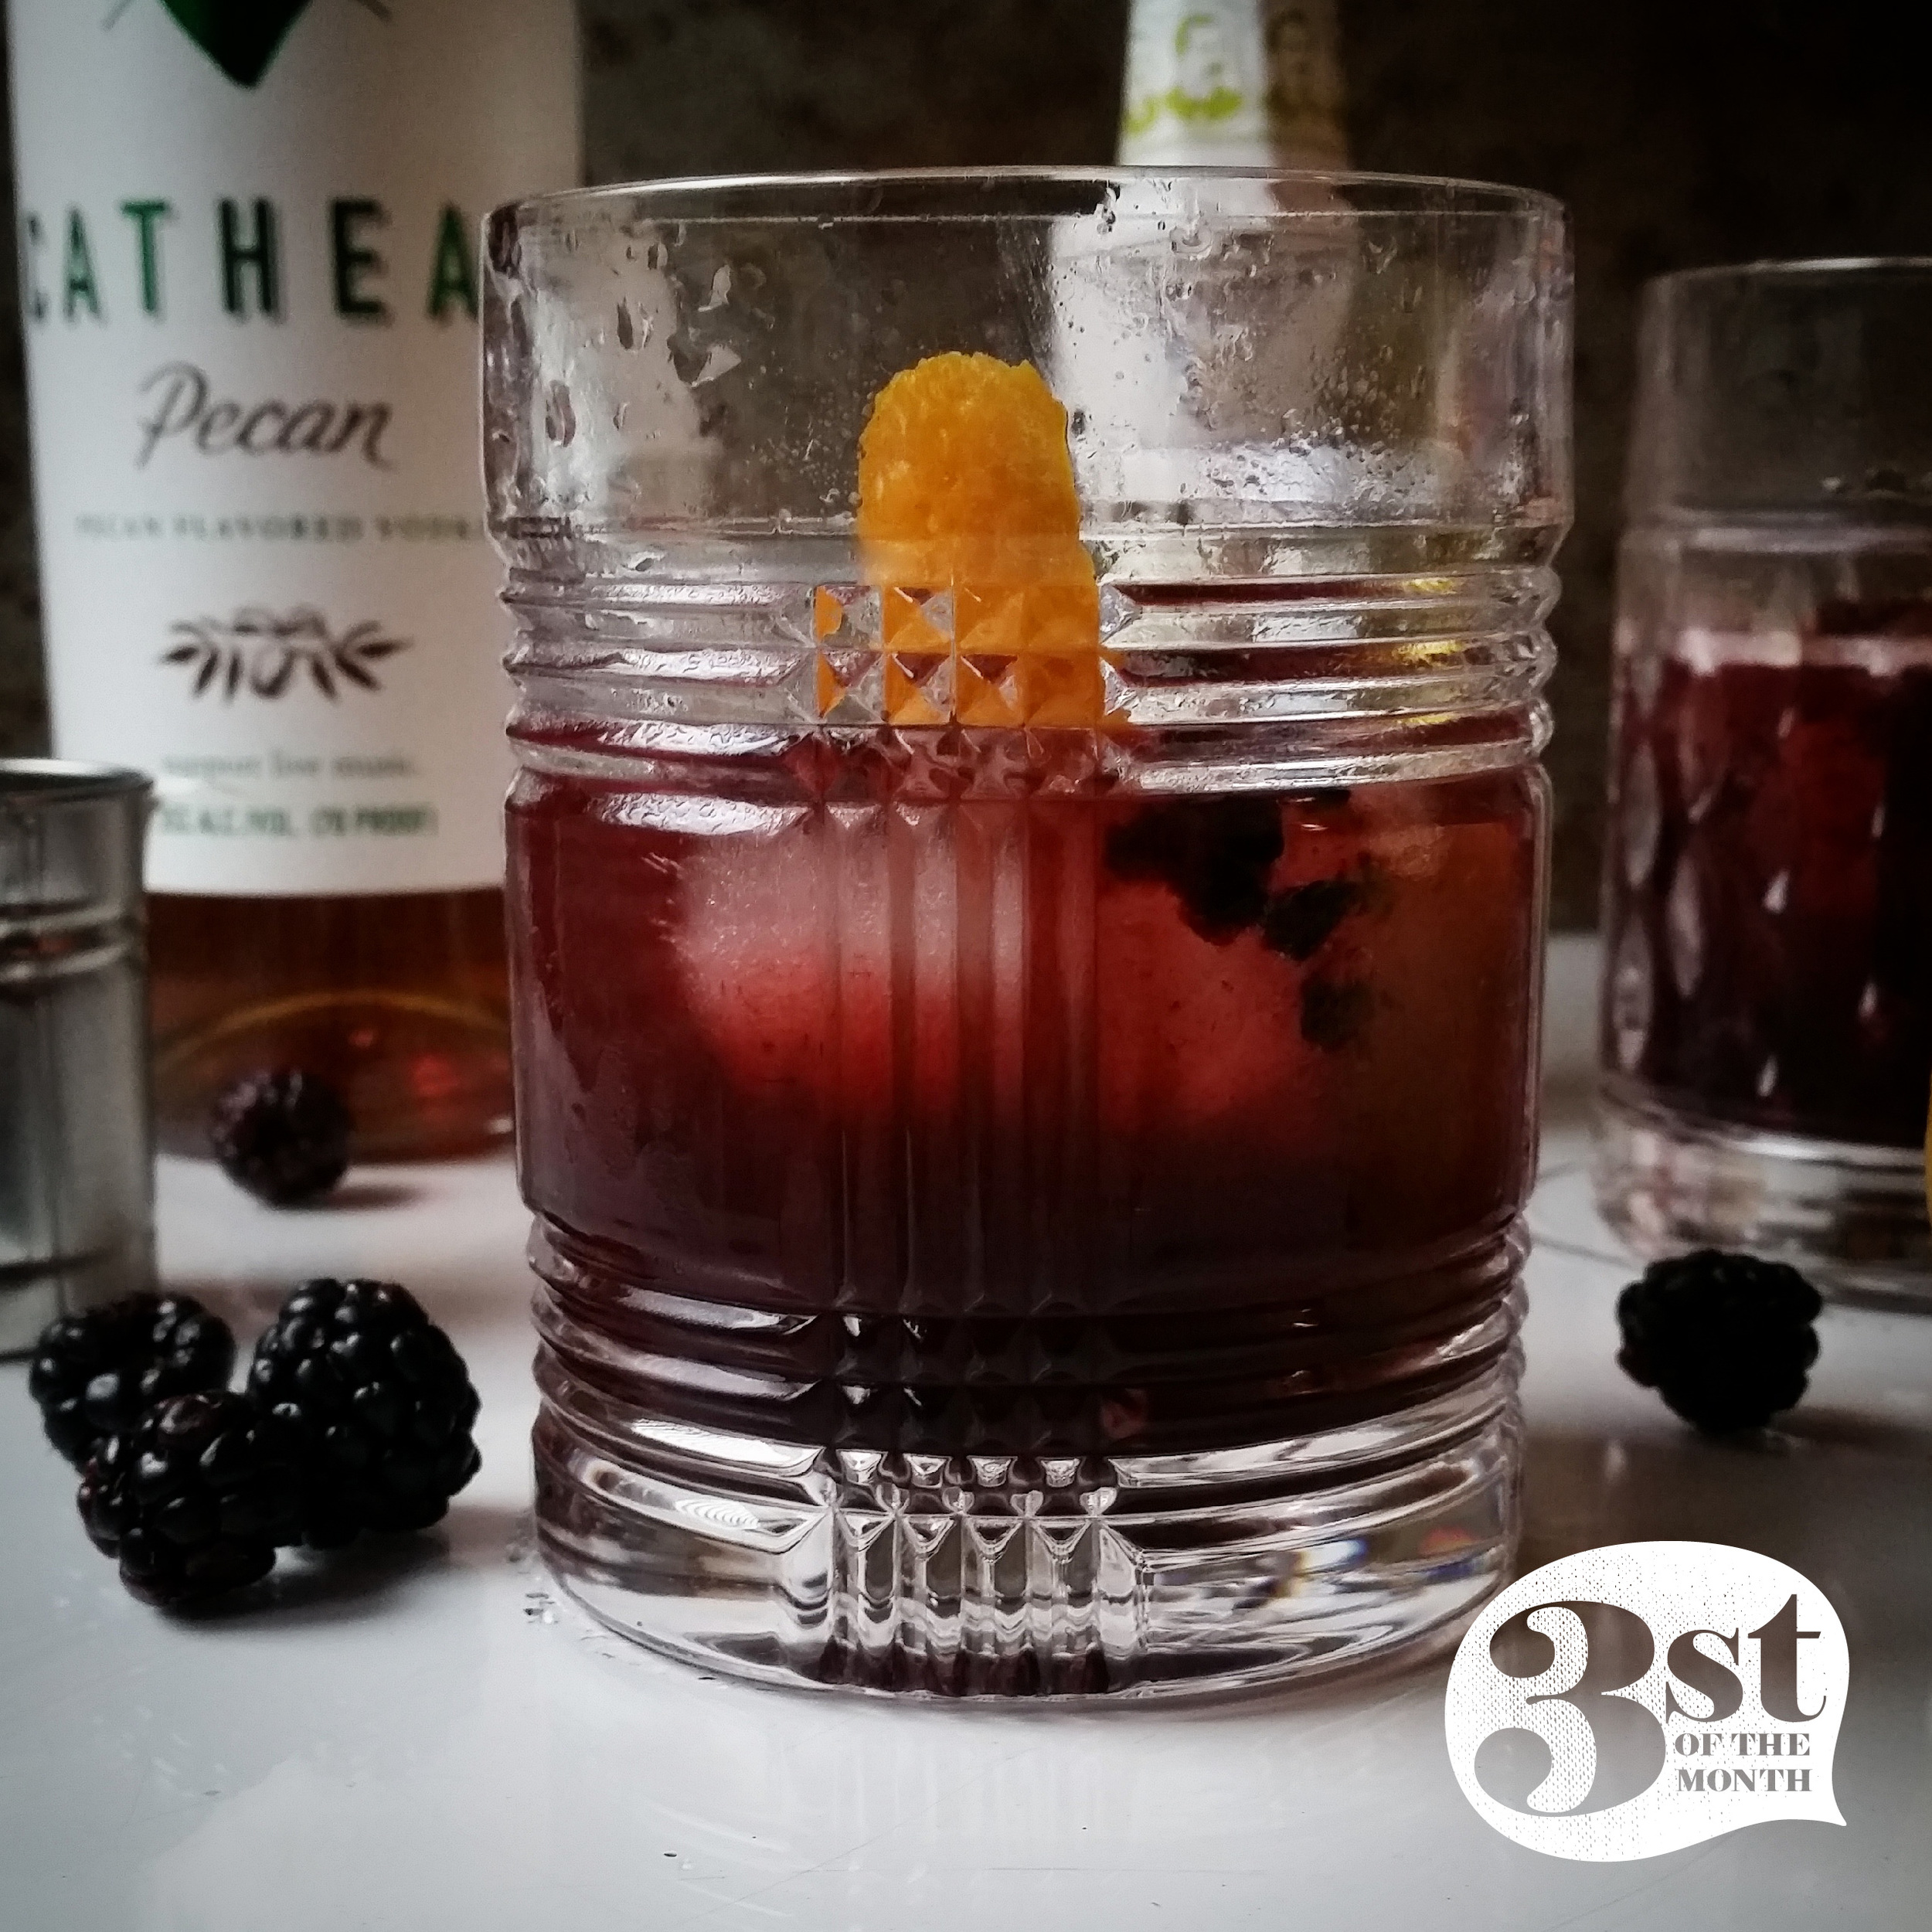 Nuts and Berries - a new cocktail creation from 3st of the Month